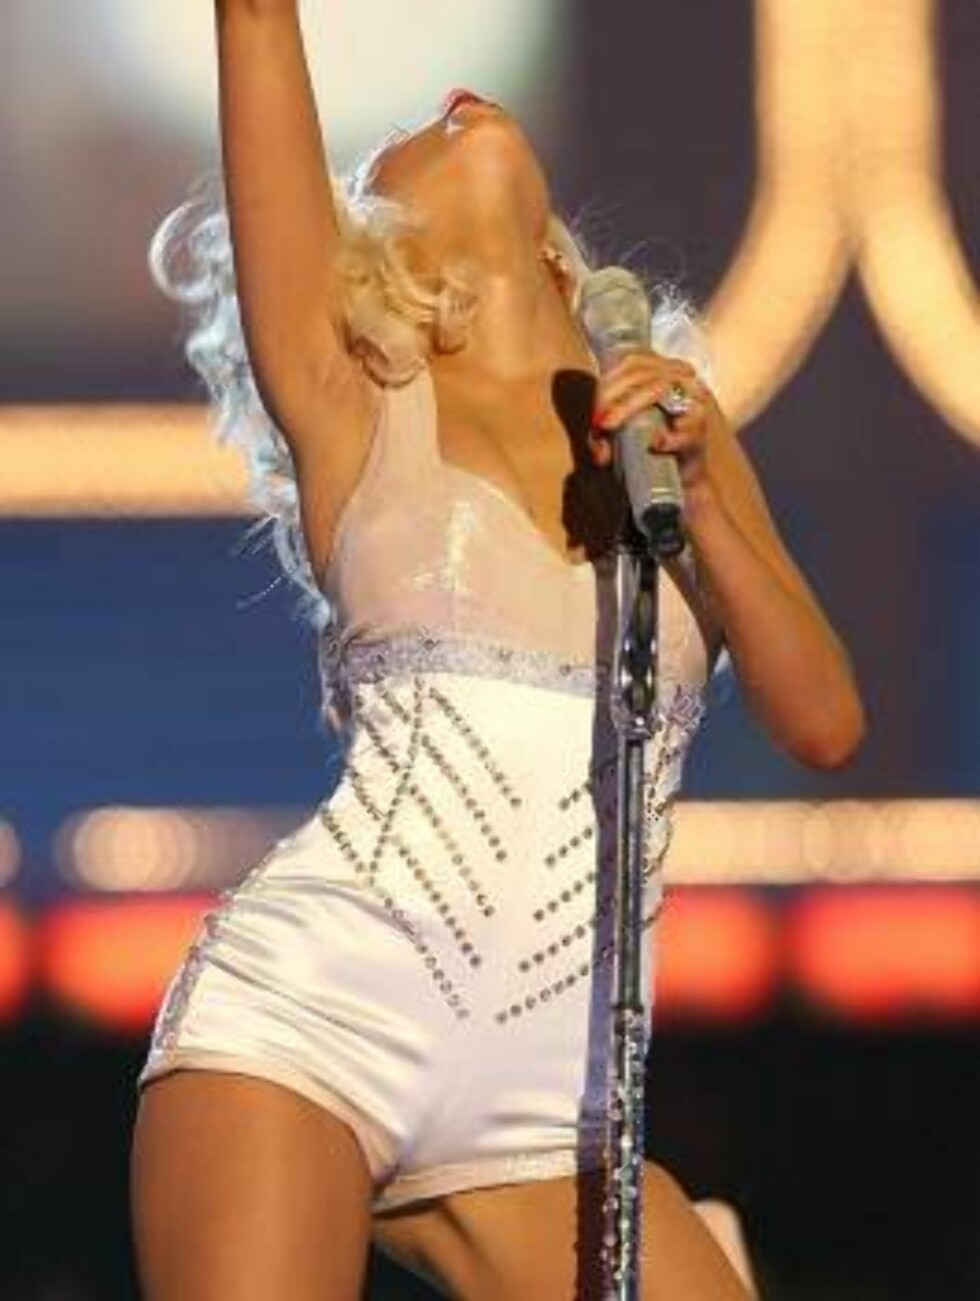 CULVER CITY, CA - JUNE 03:  Singer Christina Aguilera performs onstage at the 2006 MTV Movie Awards at Sony Pictures Studio on June 3, 2006 in Culver City, California.  (Photo by Kevin Winter/Getty Images) *** Local Caption *** Christina Aguilera  * SPECI Foto: All Over Press